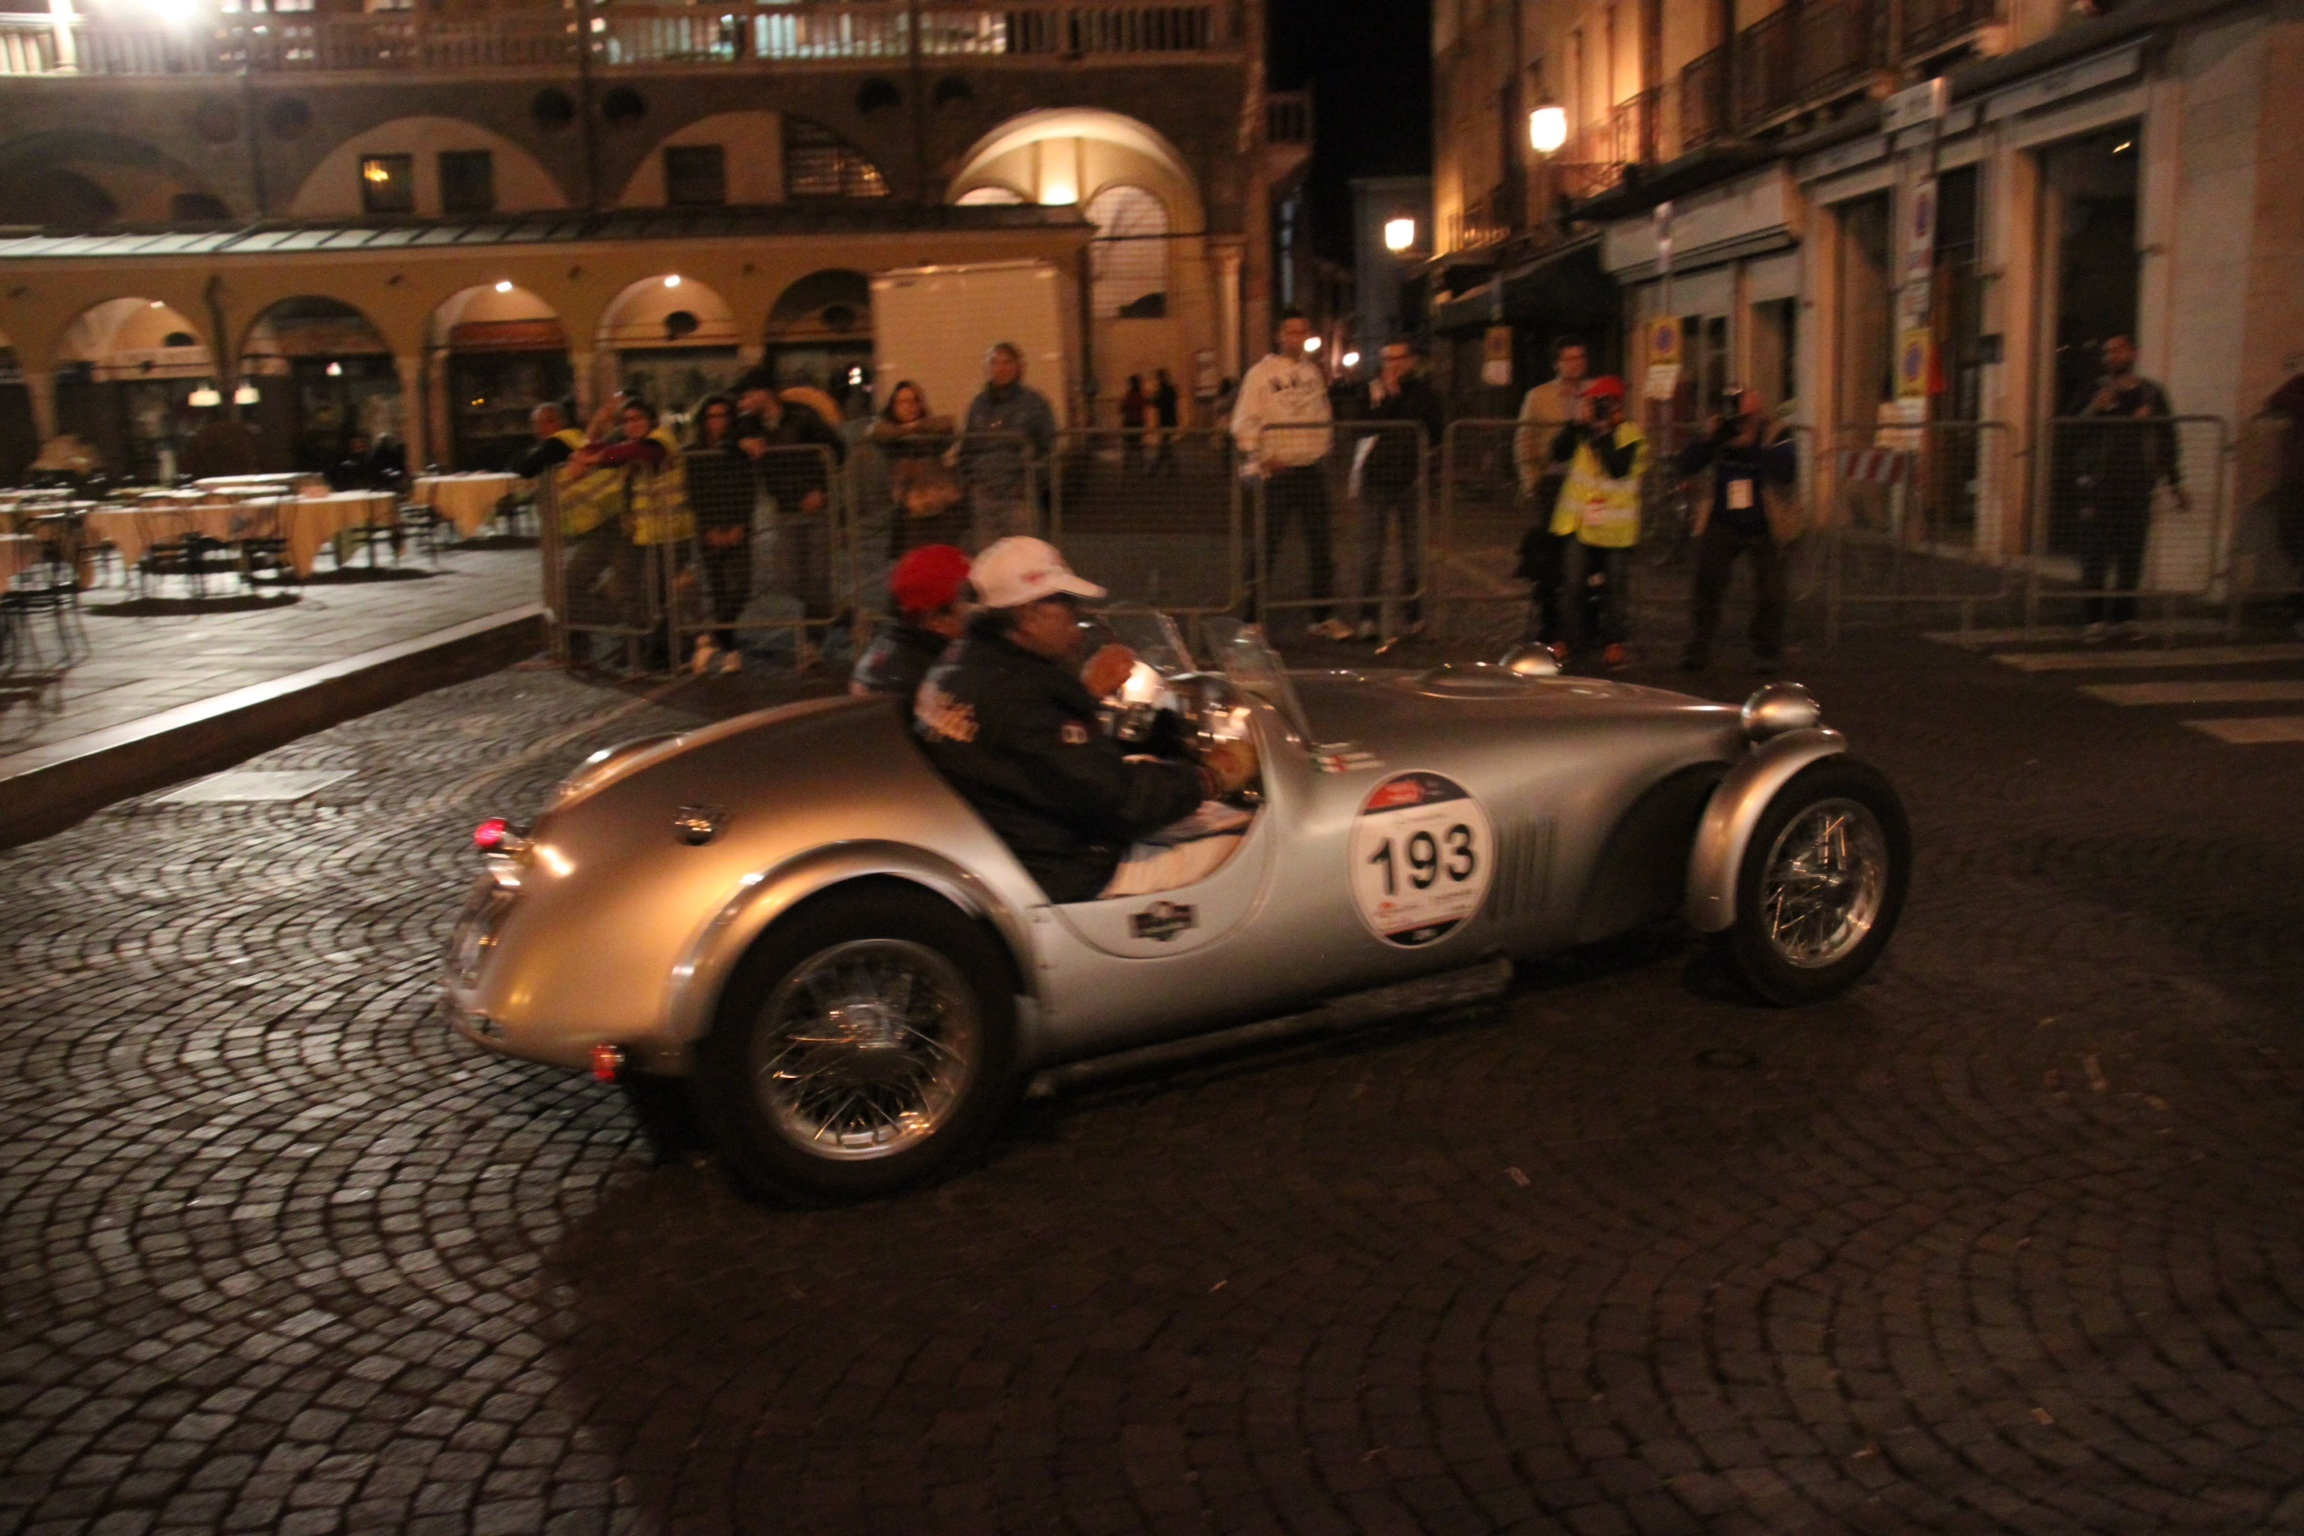 Over 300 classic cars take part in the annual Mille Miglia race